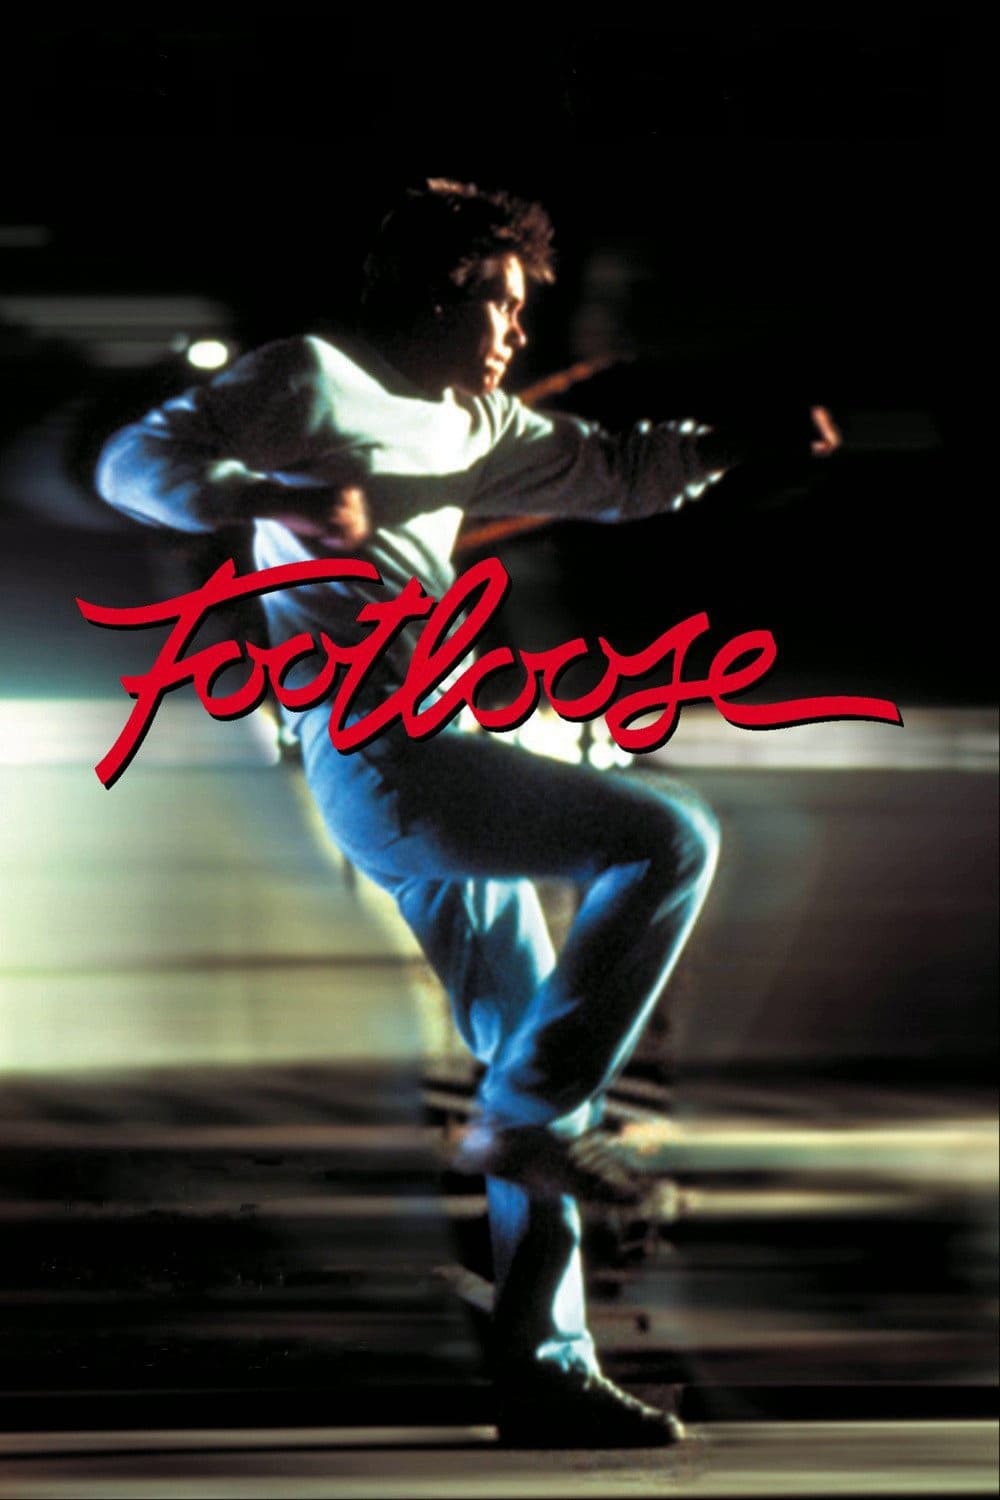 footloose  1984  streaming vf film complet en fran u00e7ais